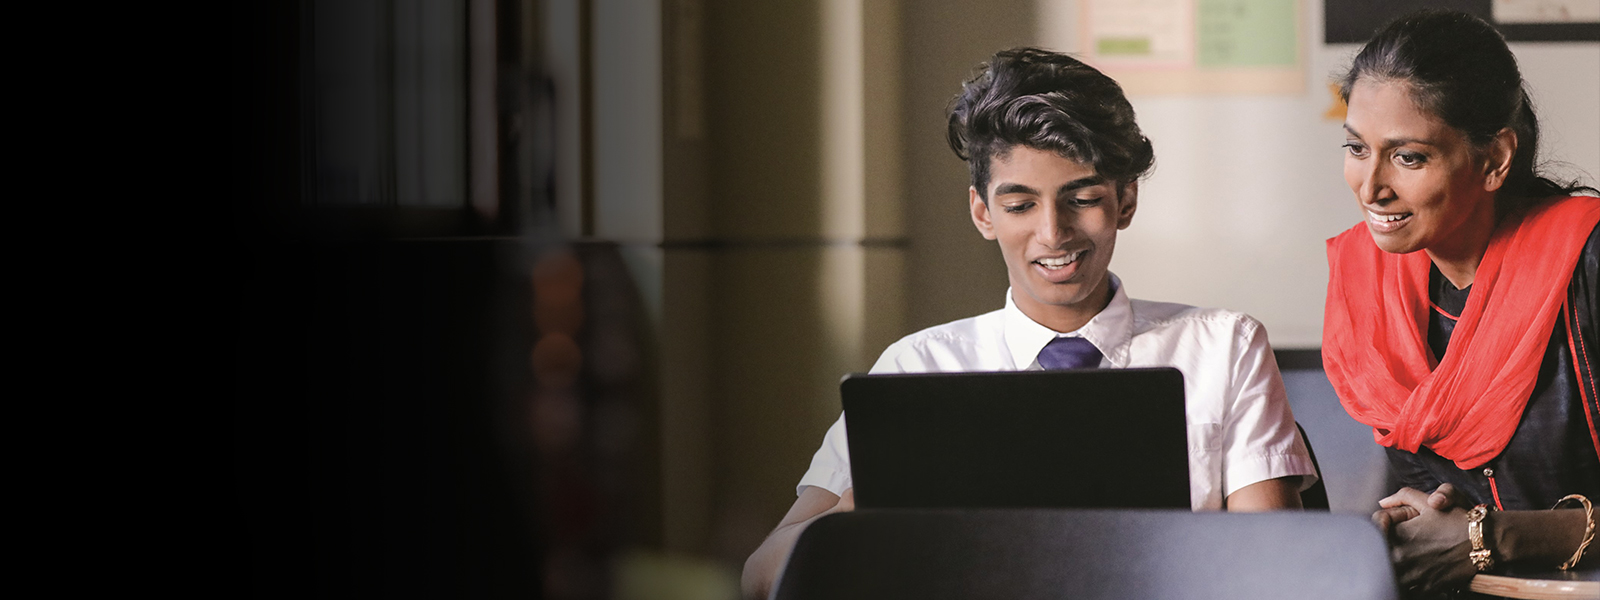 A young man works on a laptop while a woman looks over his shoulder.